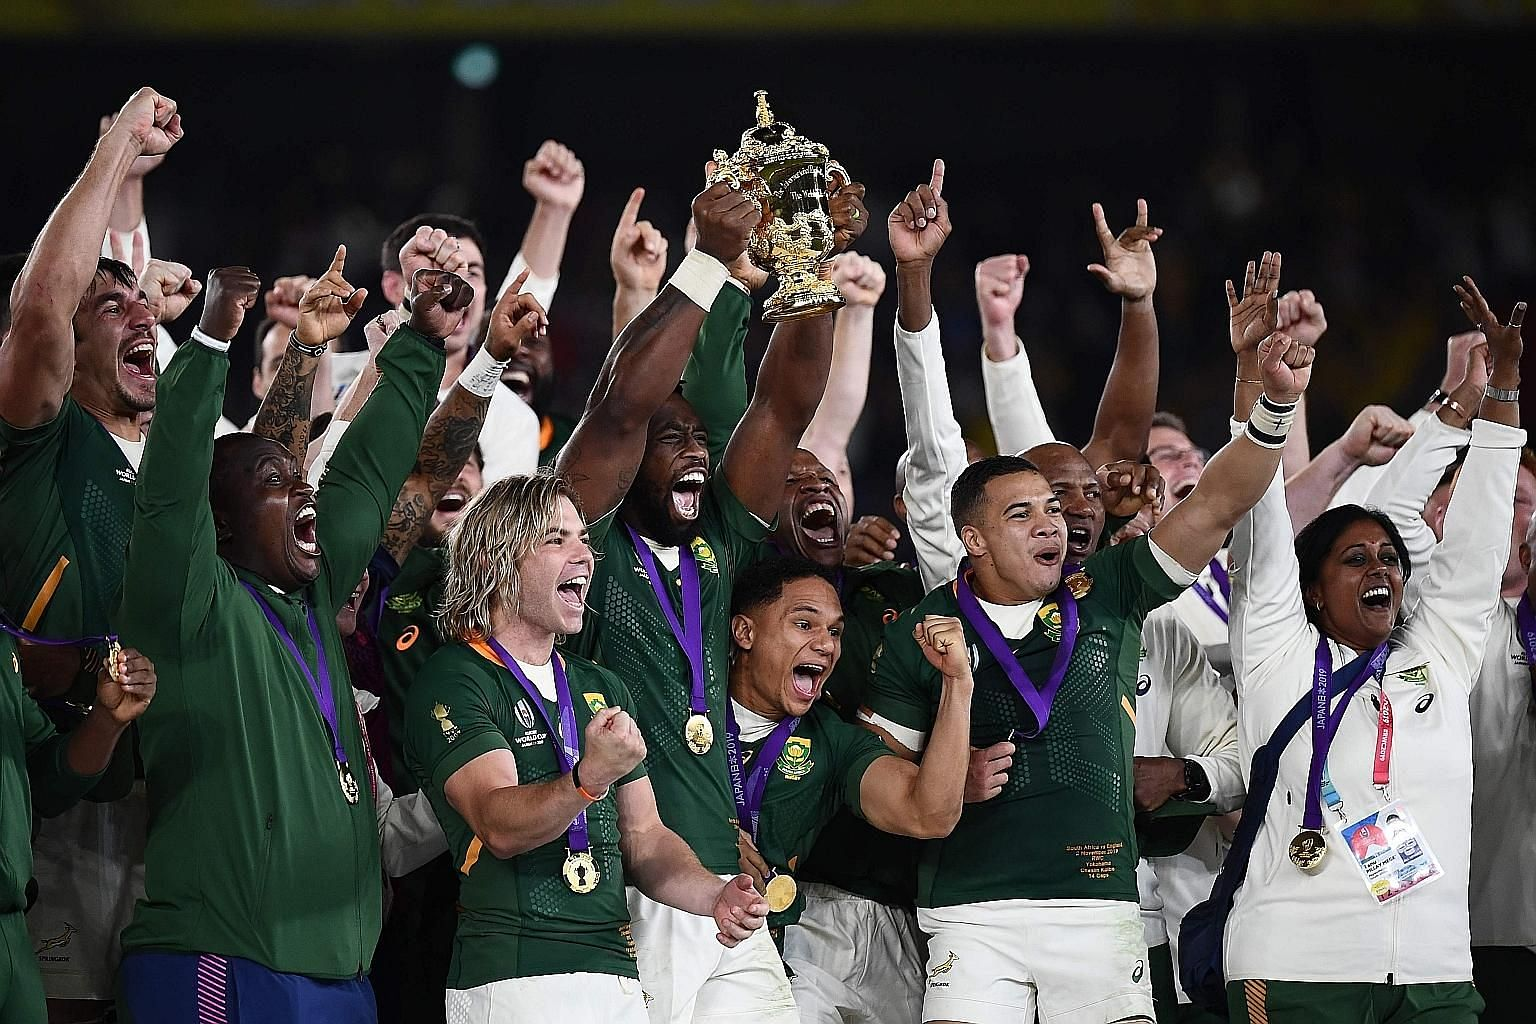 South Africa captain Siya Kolisi lifting the Webb Ellis Cup as they celebrate beating England 32-12 in the Rugby World Cup final at the International Stadium Yokohama yesterday.